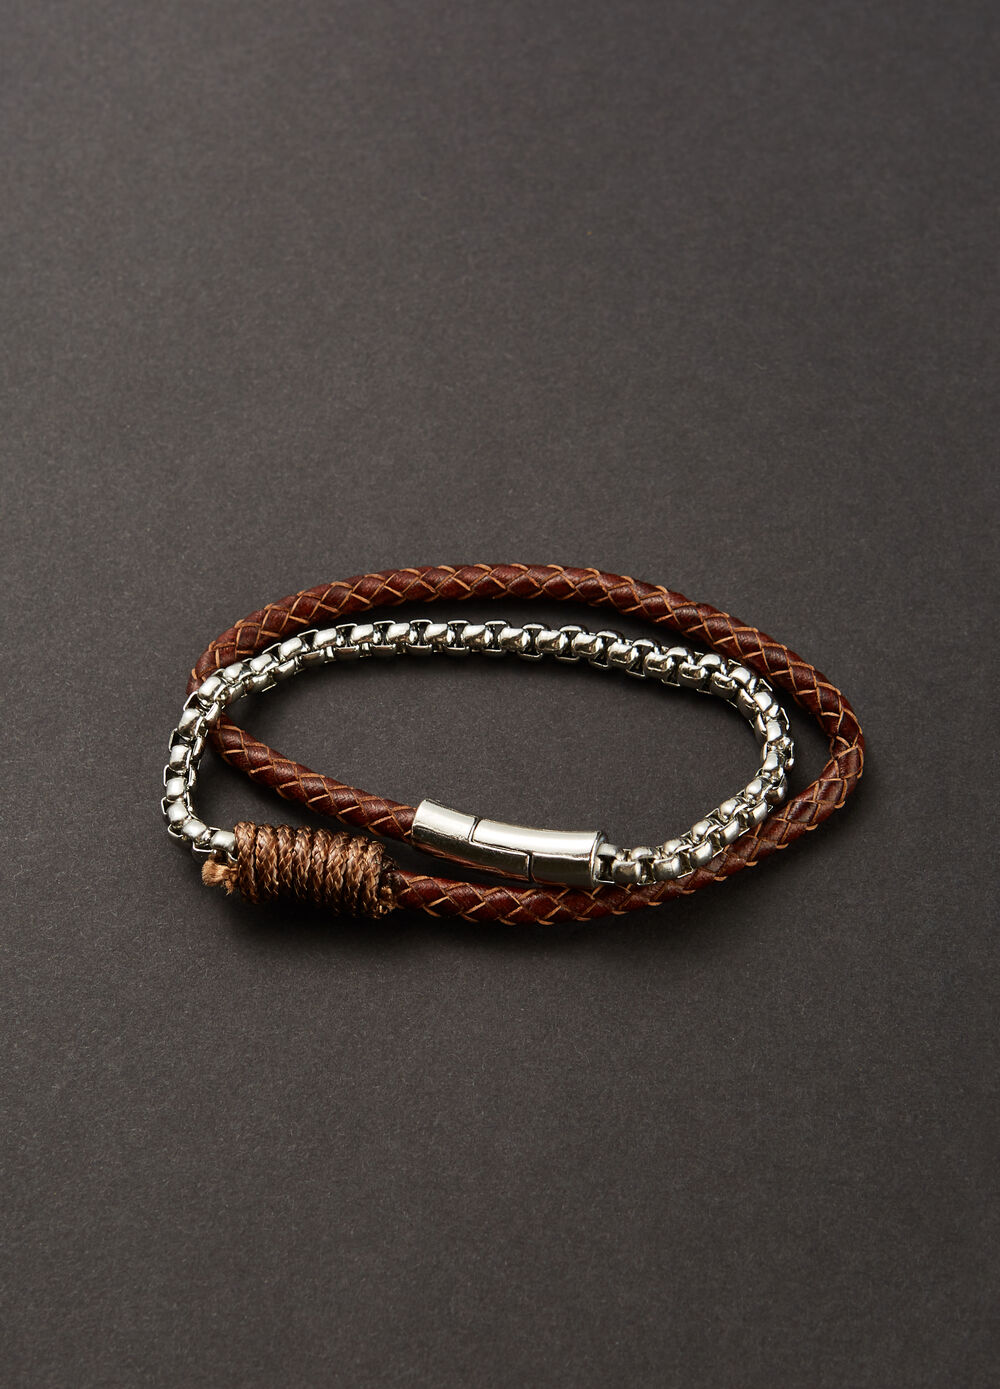 Leather bracelet with chain insert